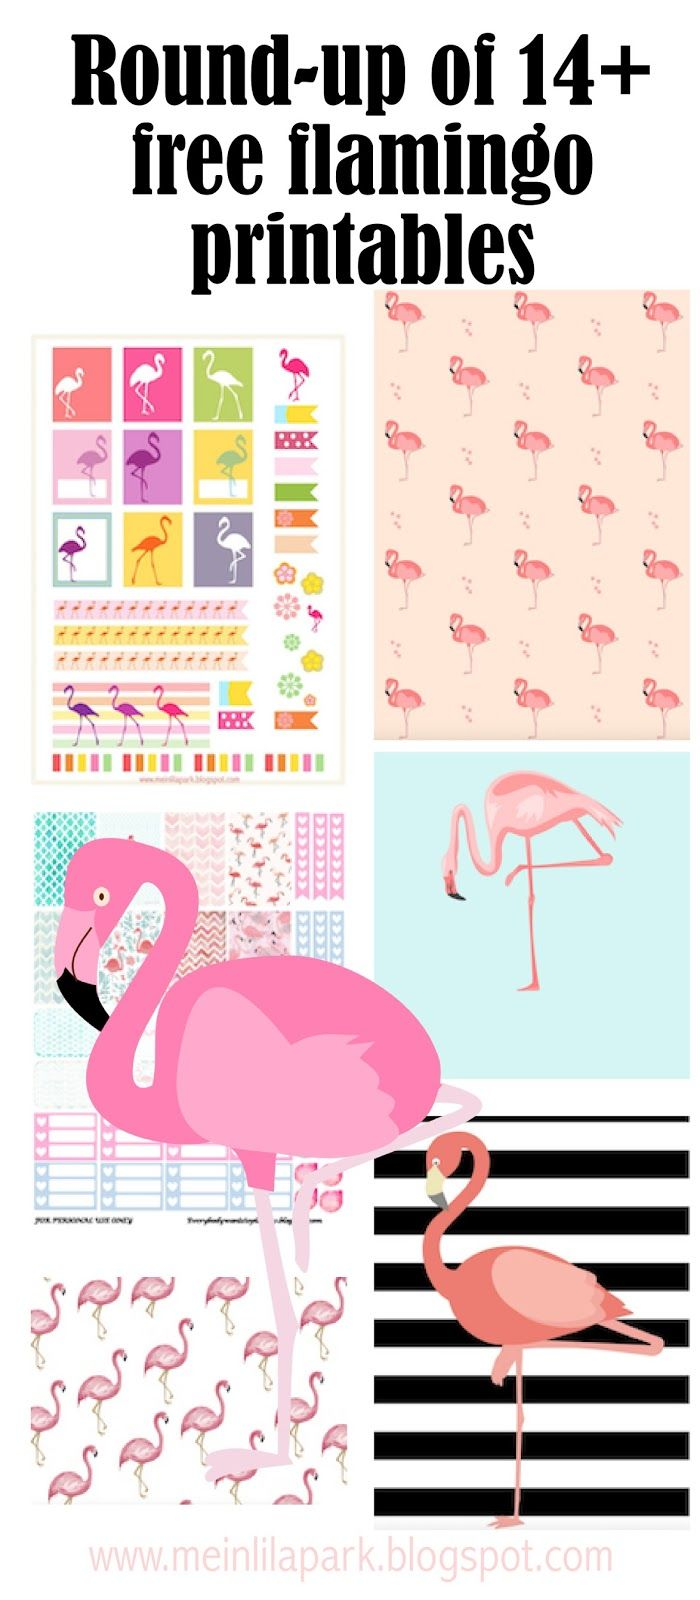 Flamingo Printable Cards Flamingo card toppers set of 8 Instant Digital Download Craft Supplies Scrapbooking Flamingo card making